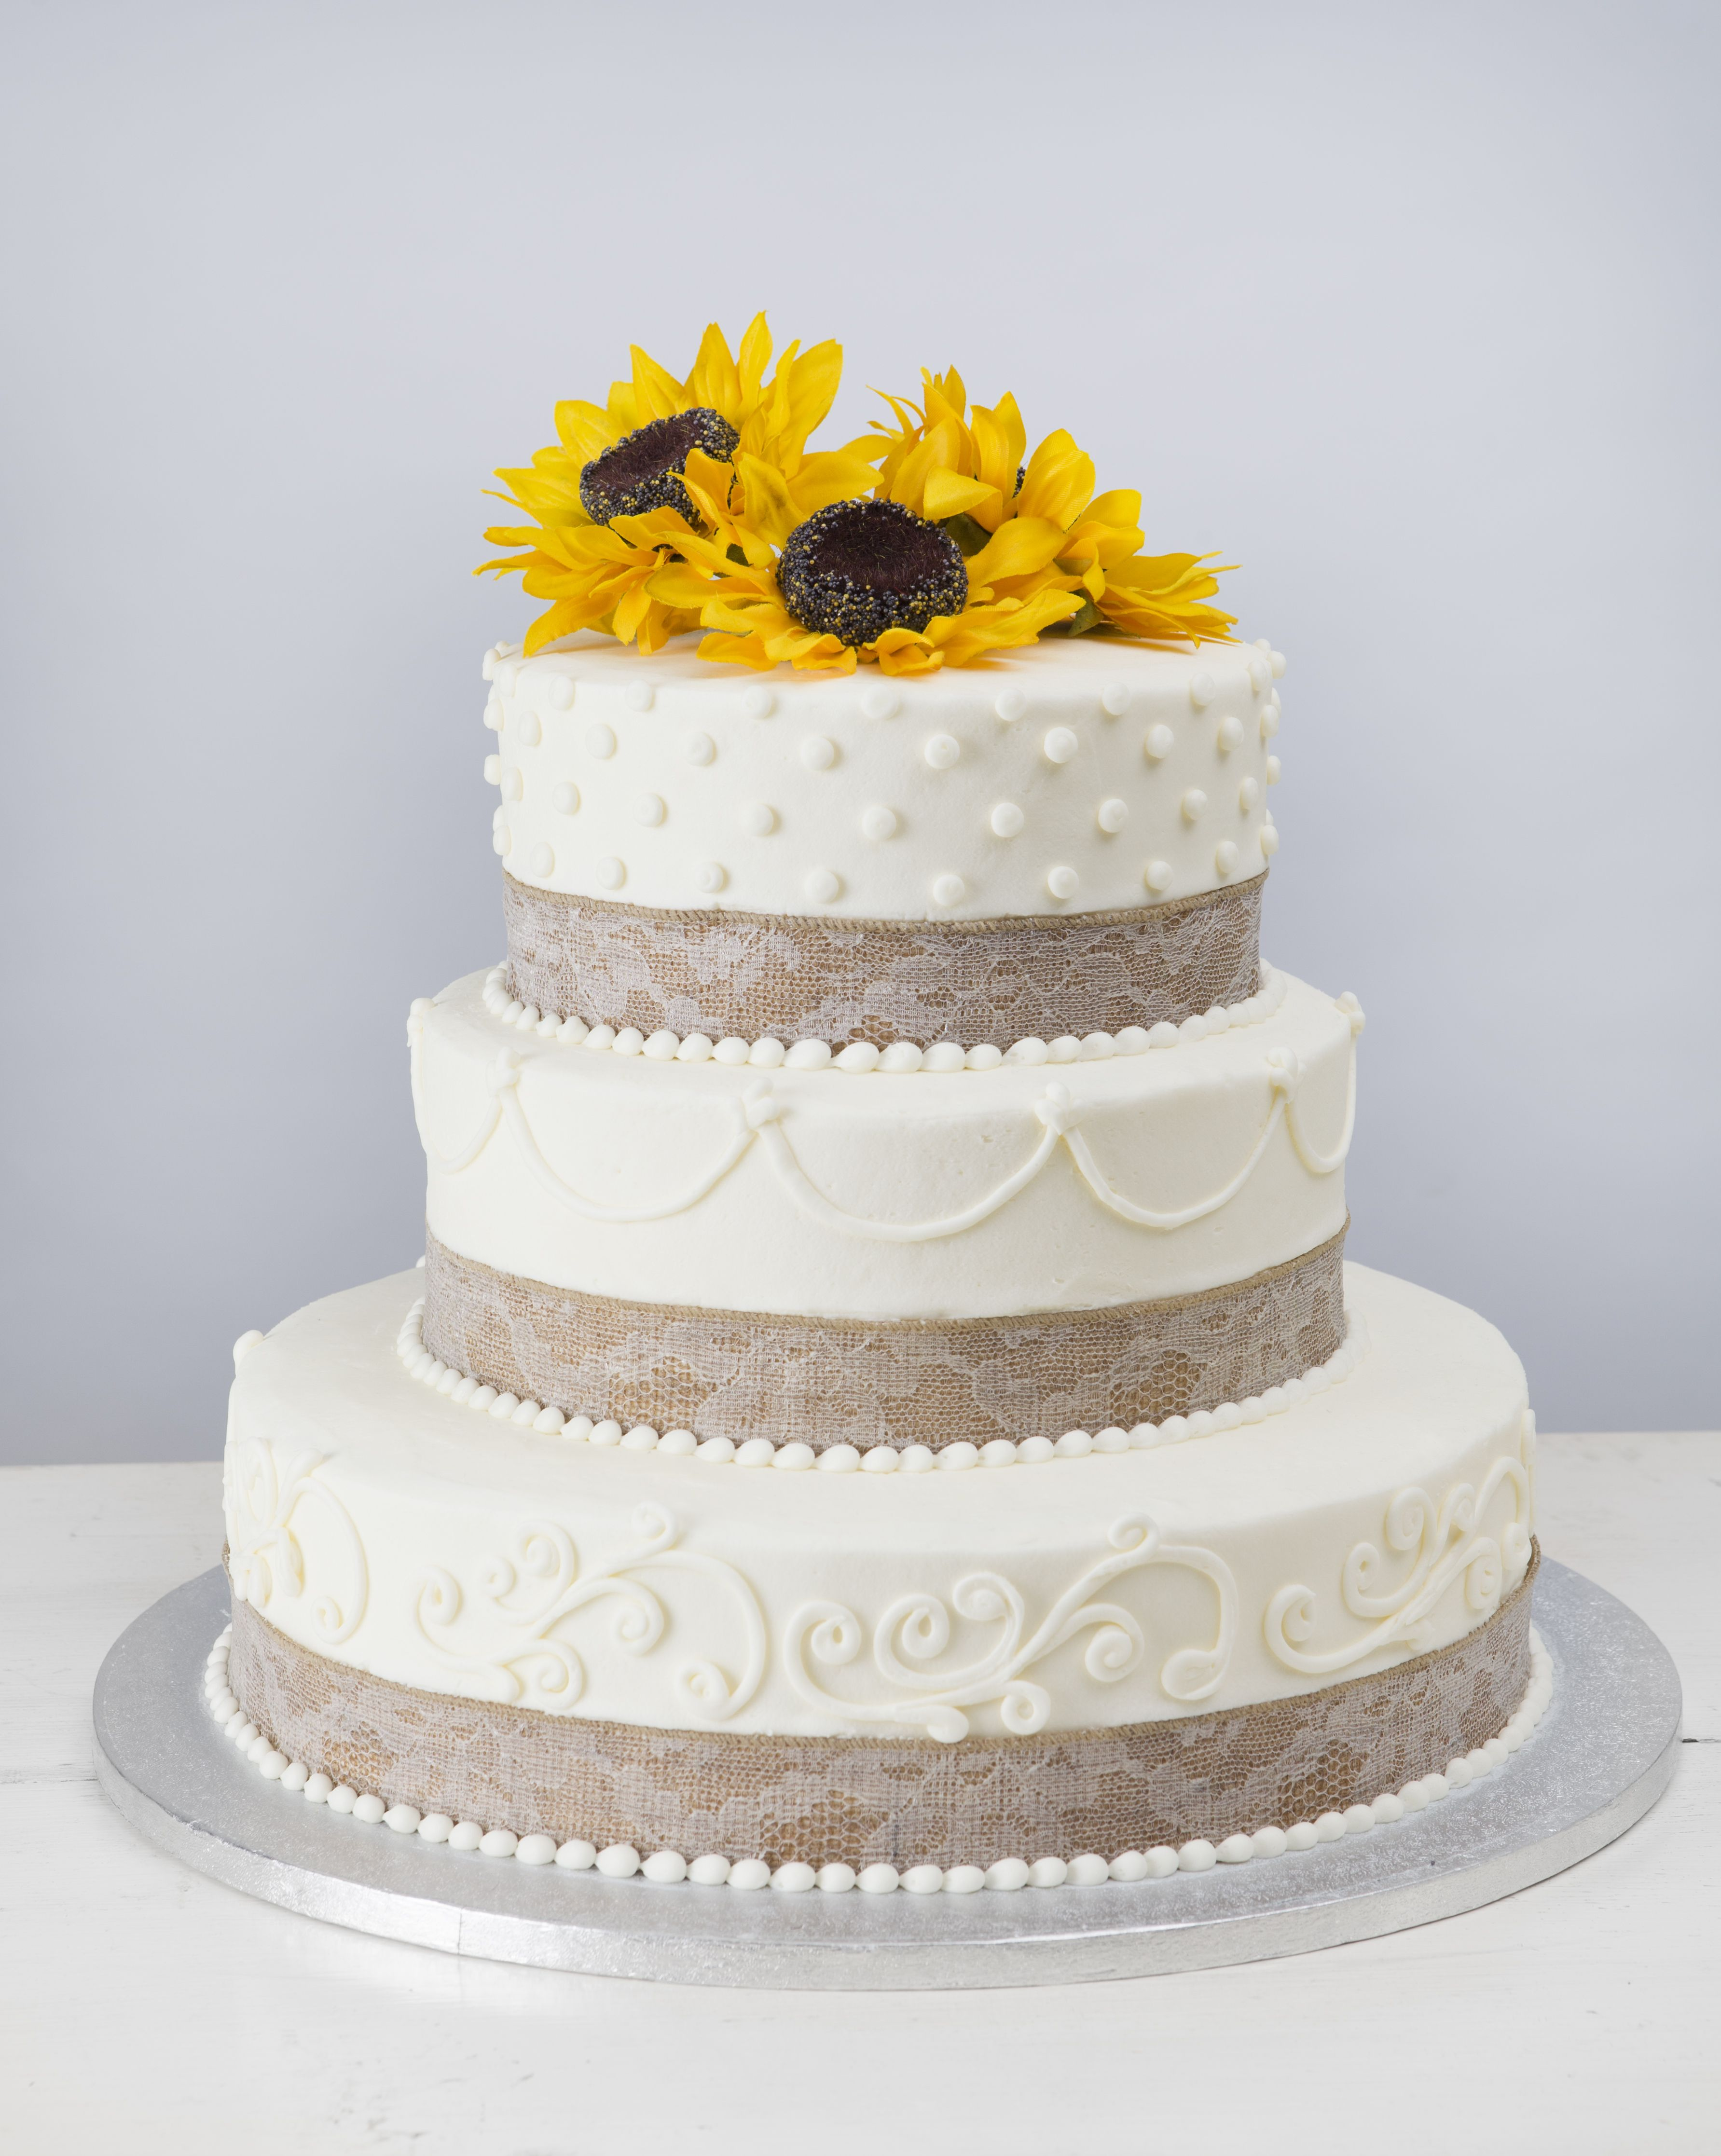 Country Chic From Martin S Bake Shoppe Wedding Cakes With Cupcakes Wedding Cakes Beautiful Wedding Cakes